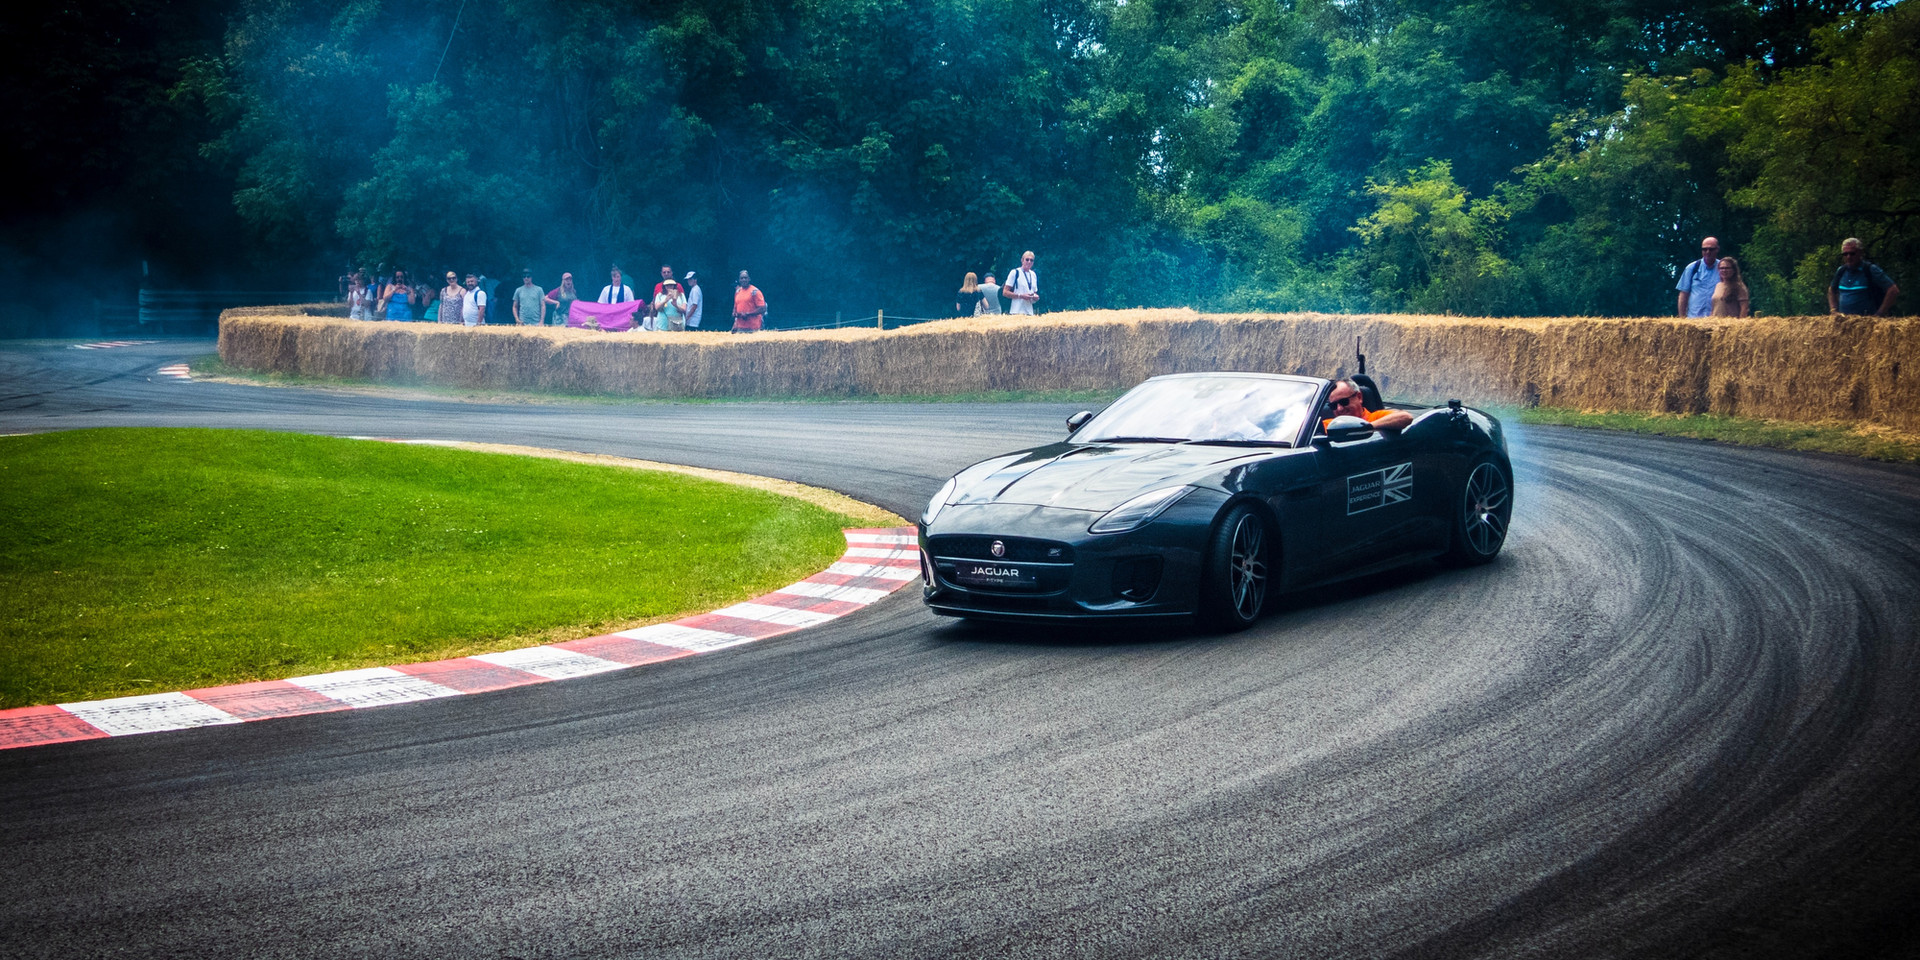 World Famous Goodwood Events